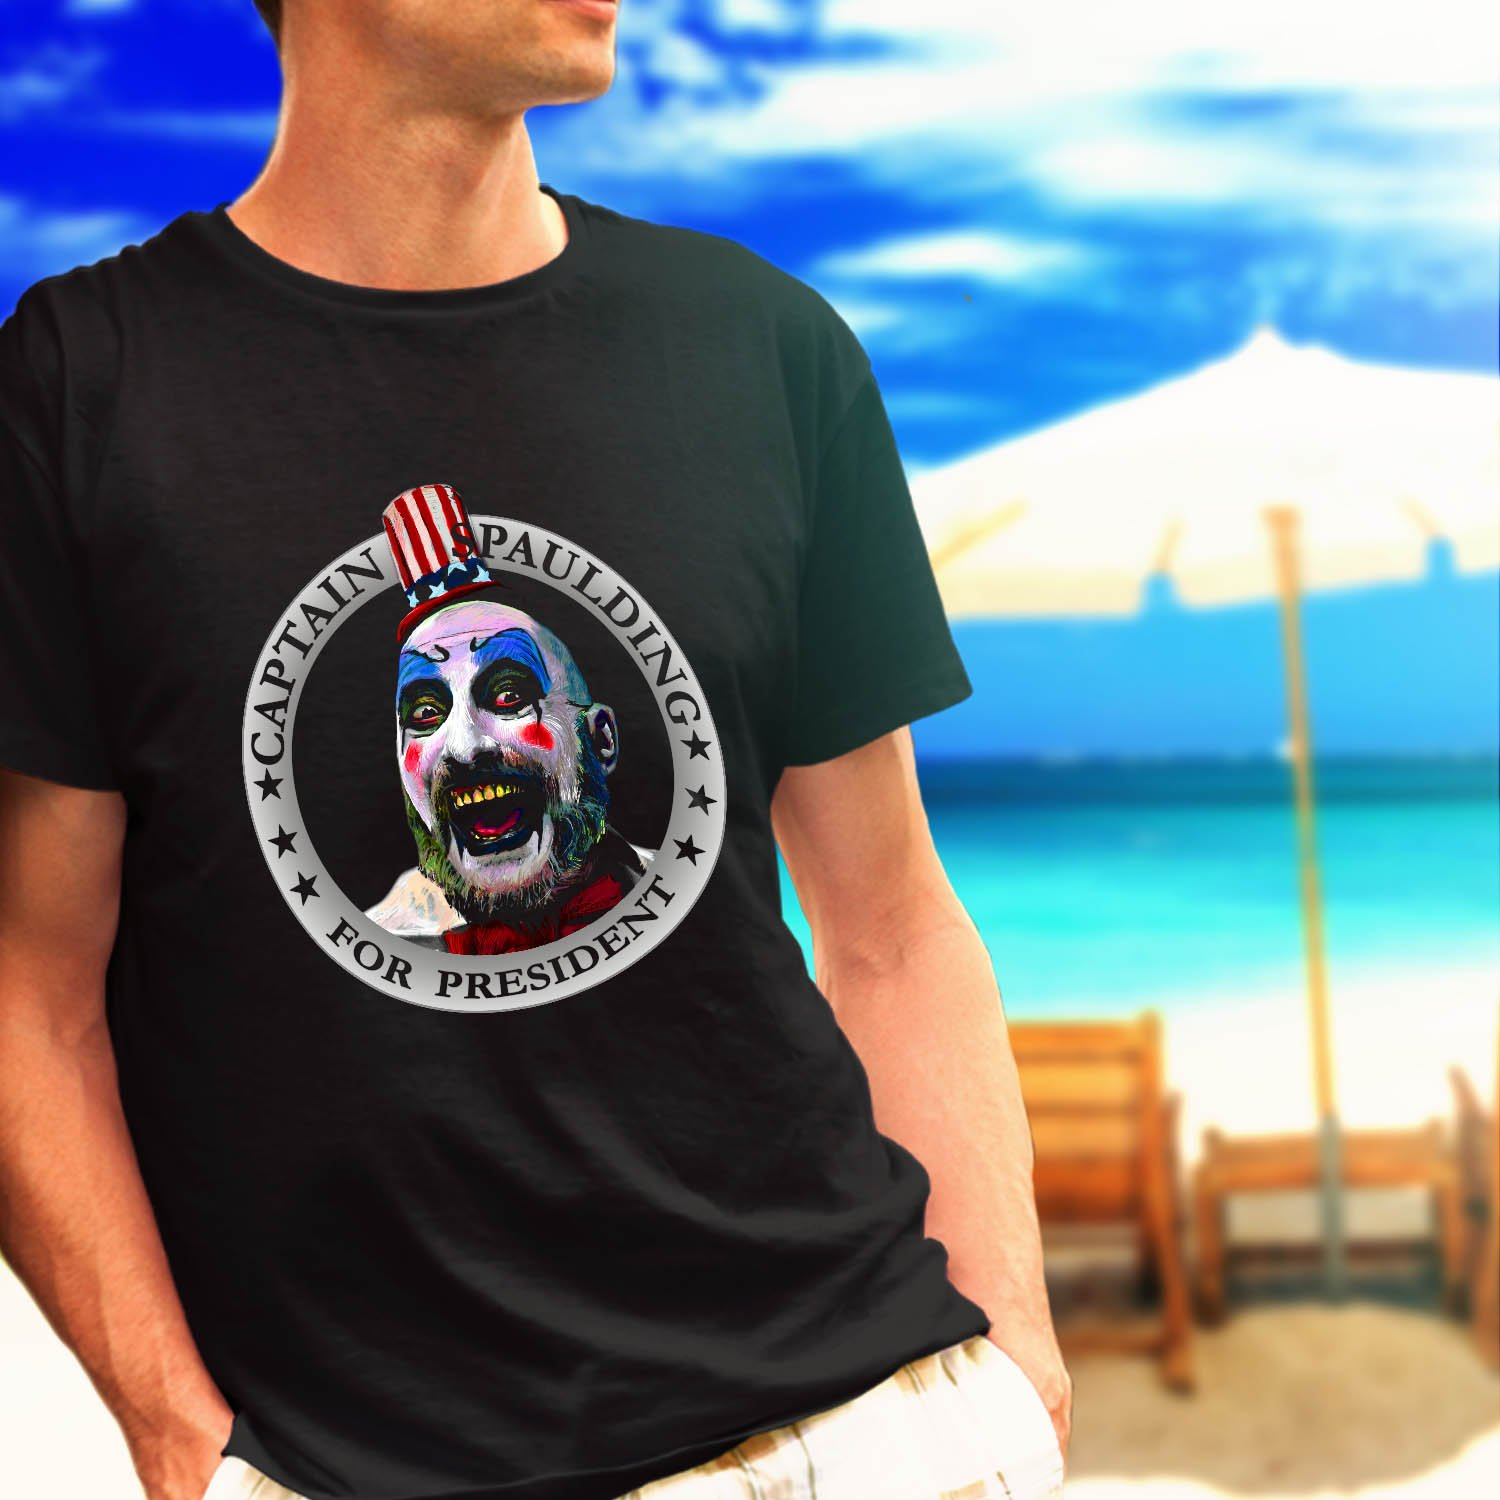 Captain Spaulding for President Rob Zombie black t-shirt tshirt shirts tee SIZE S